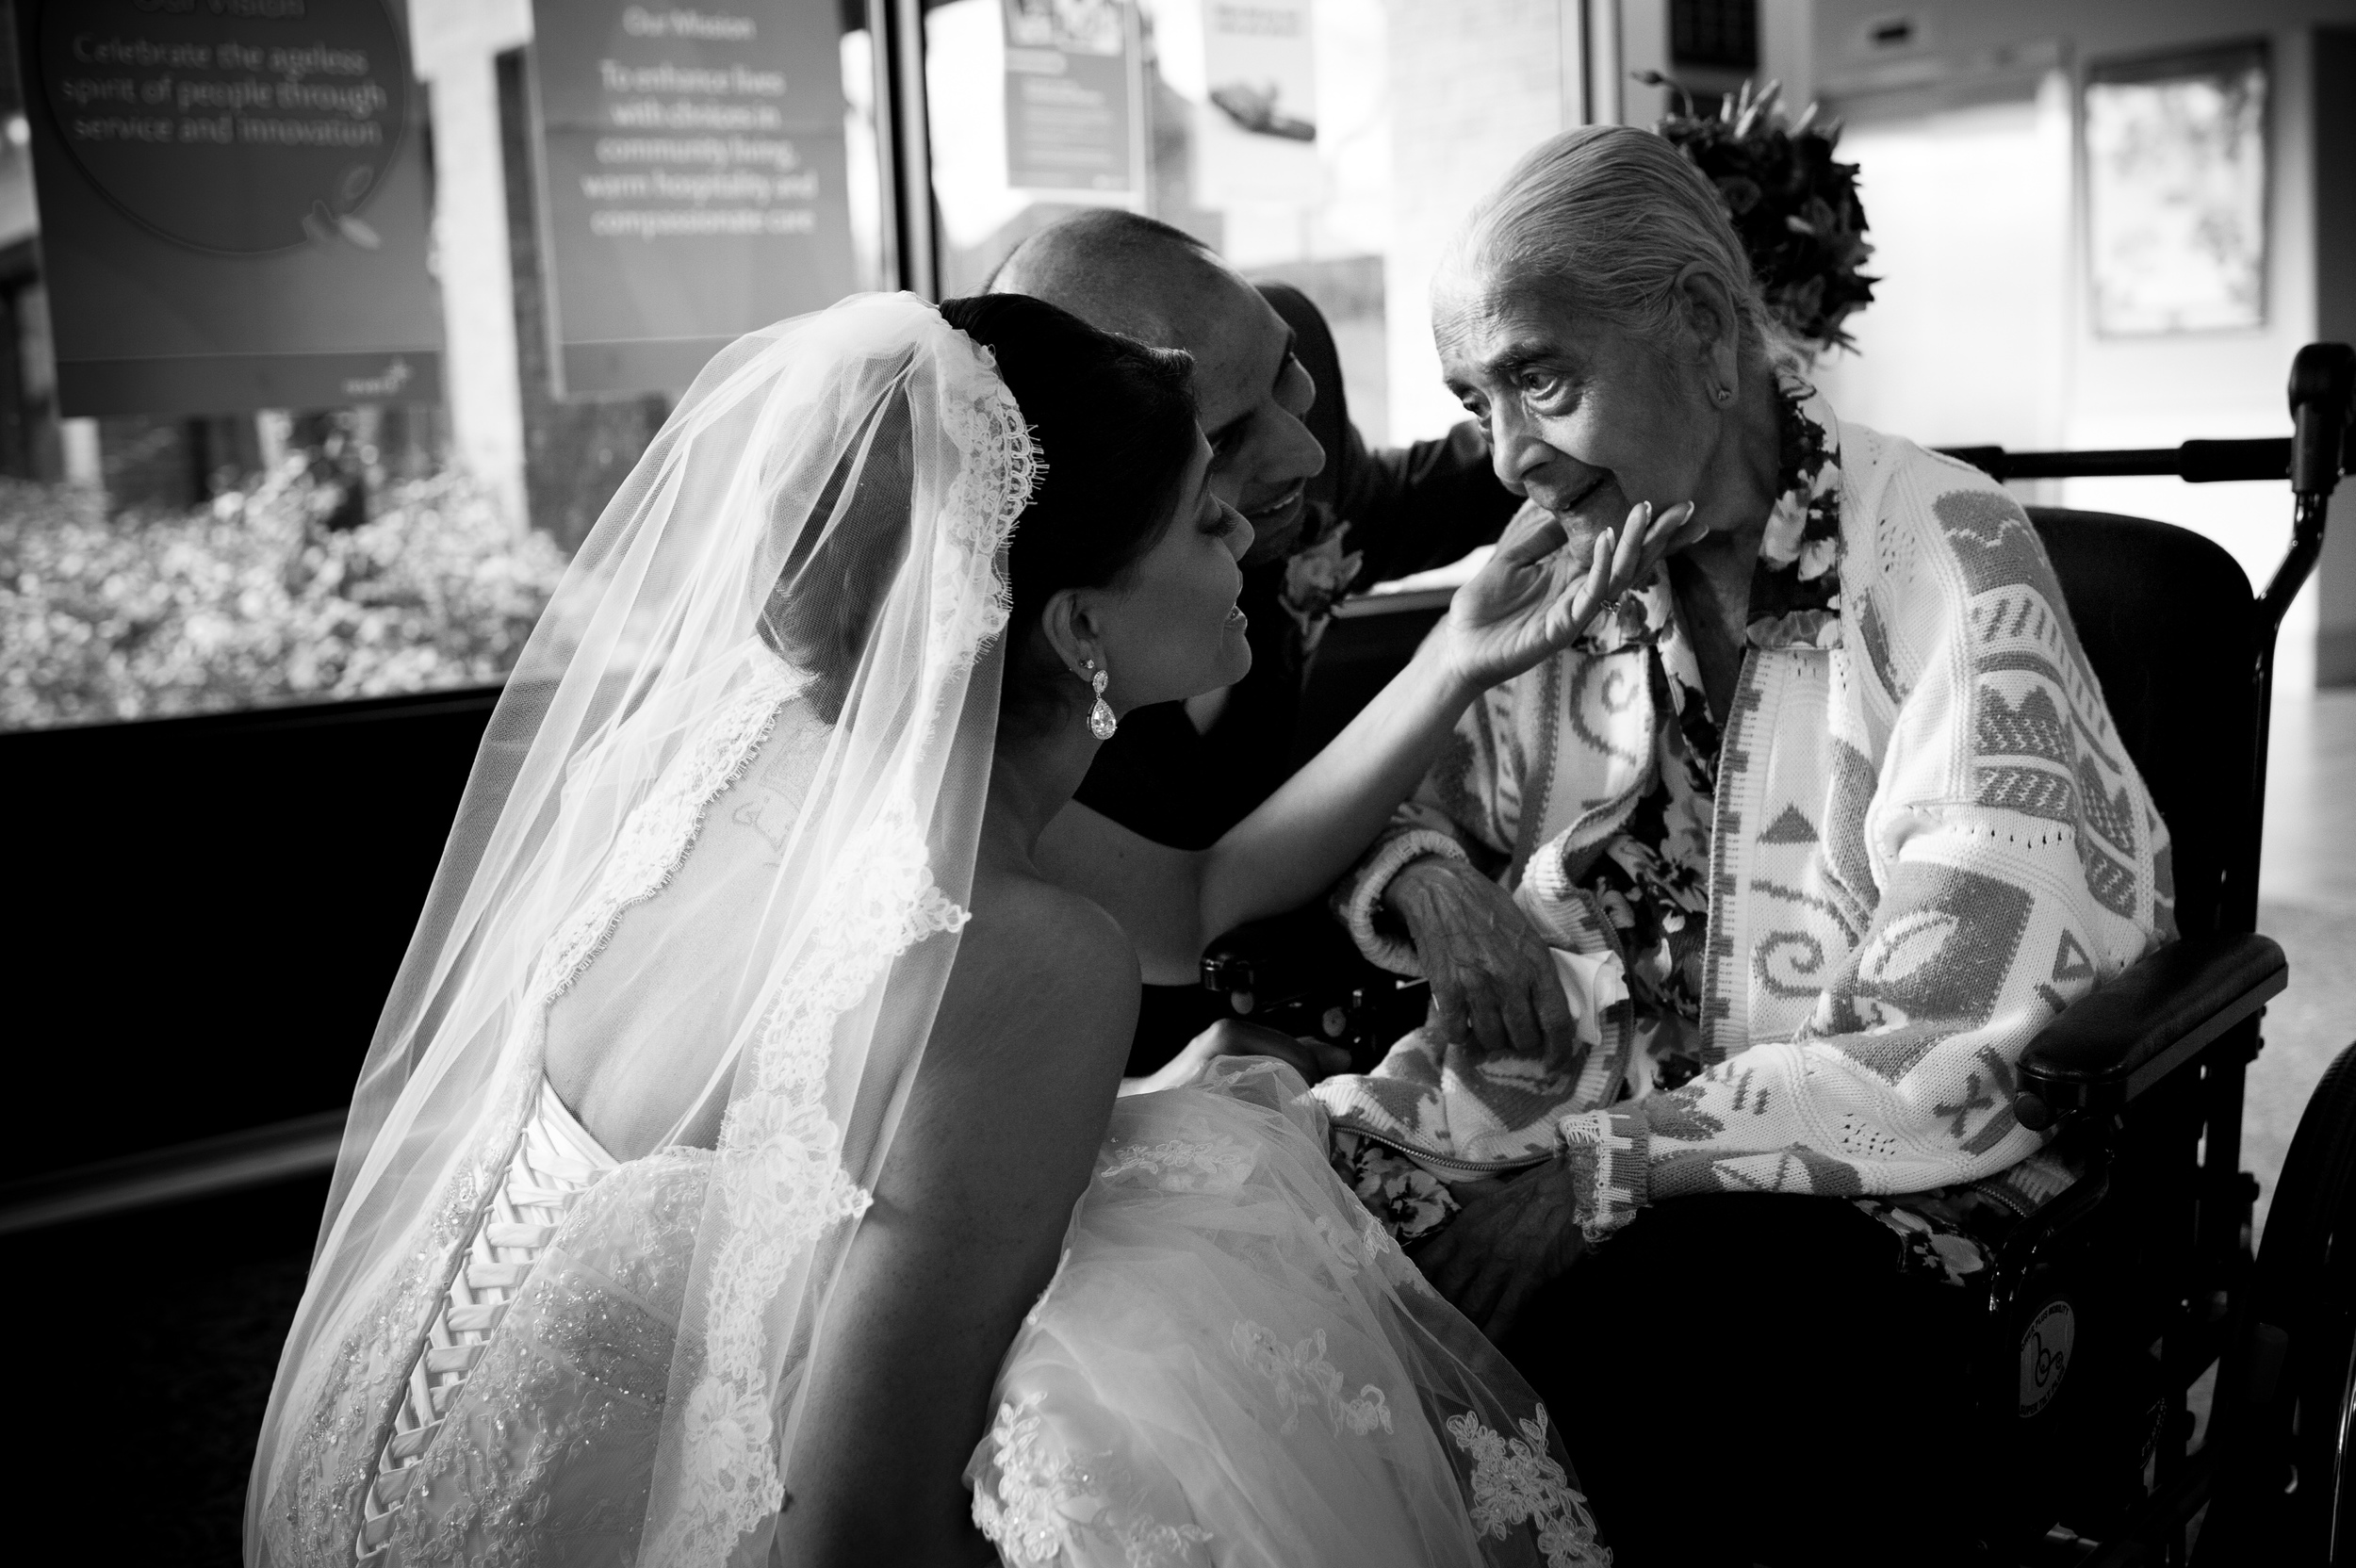 A bride visit's her grandmother in the nursing home immediately after her wedding ceremony.